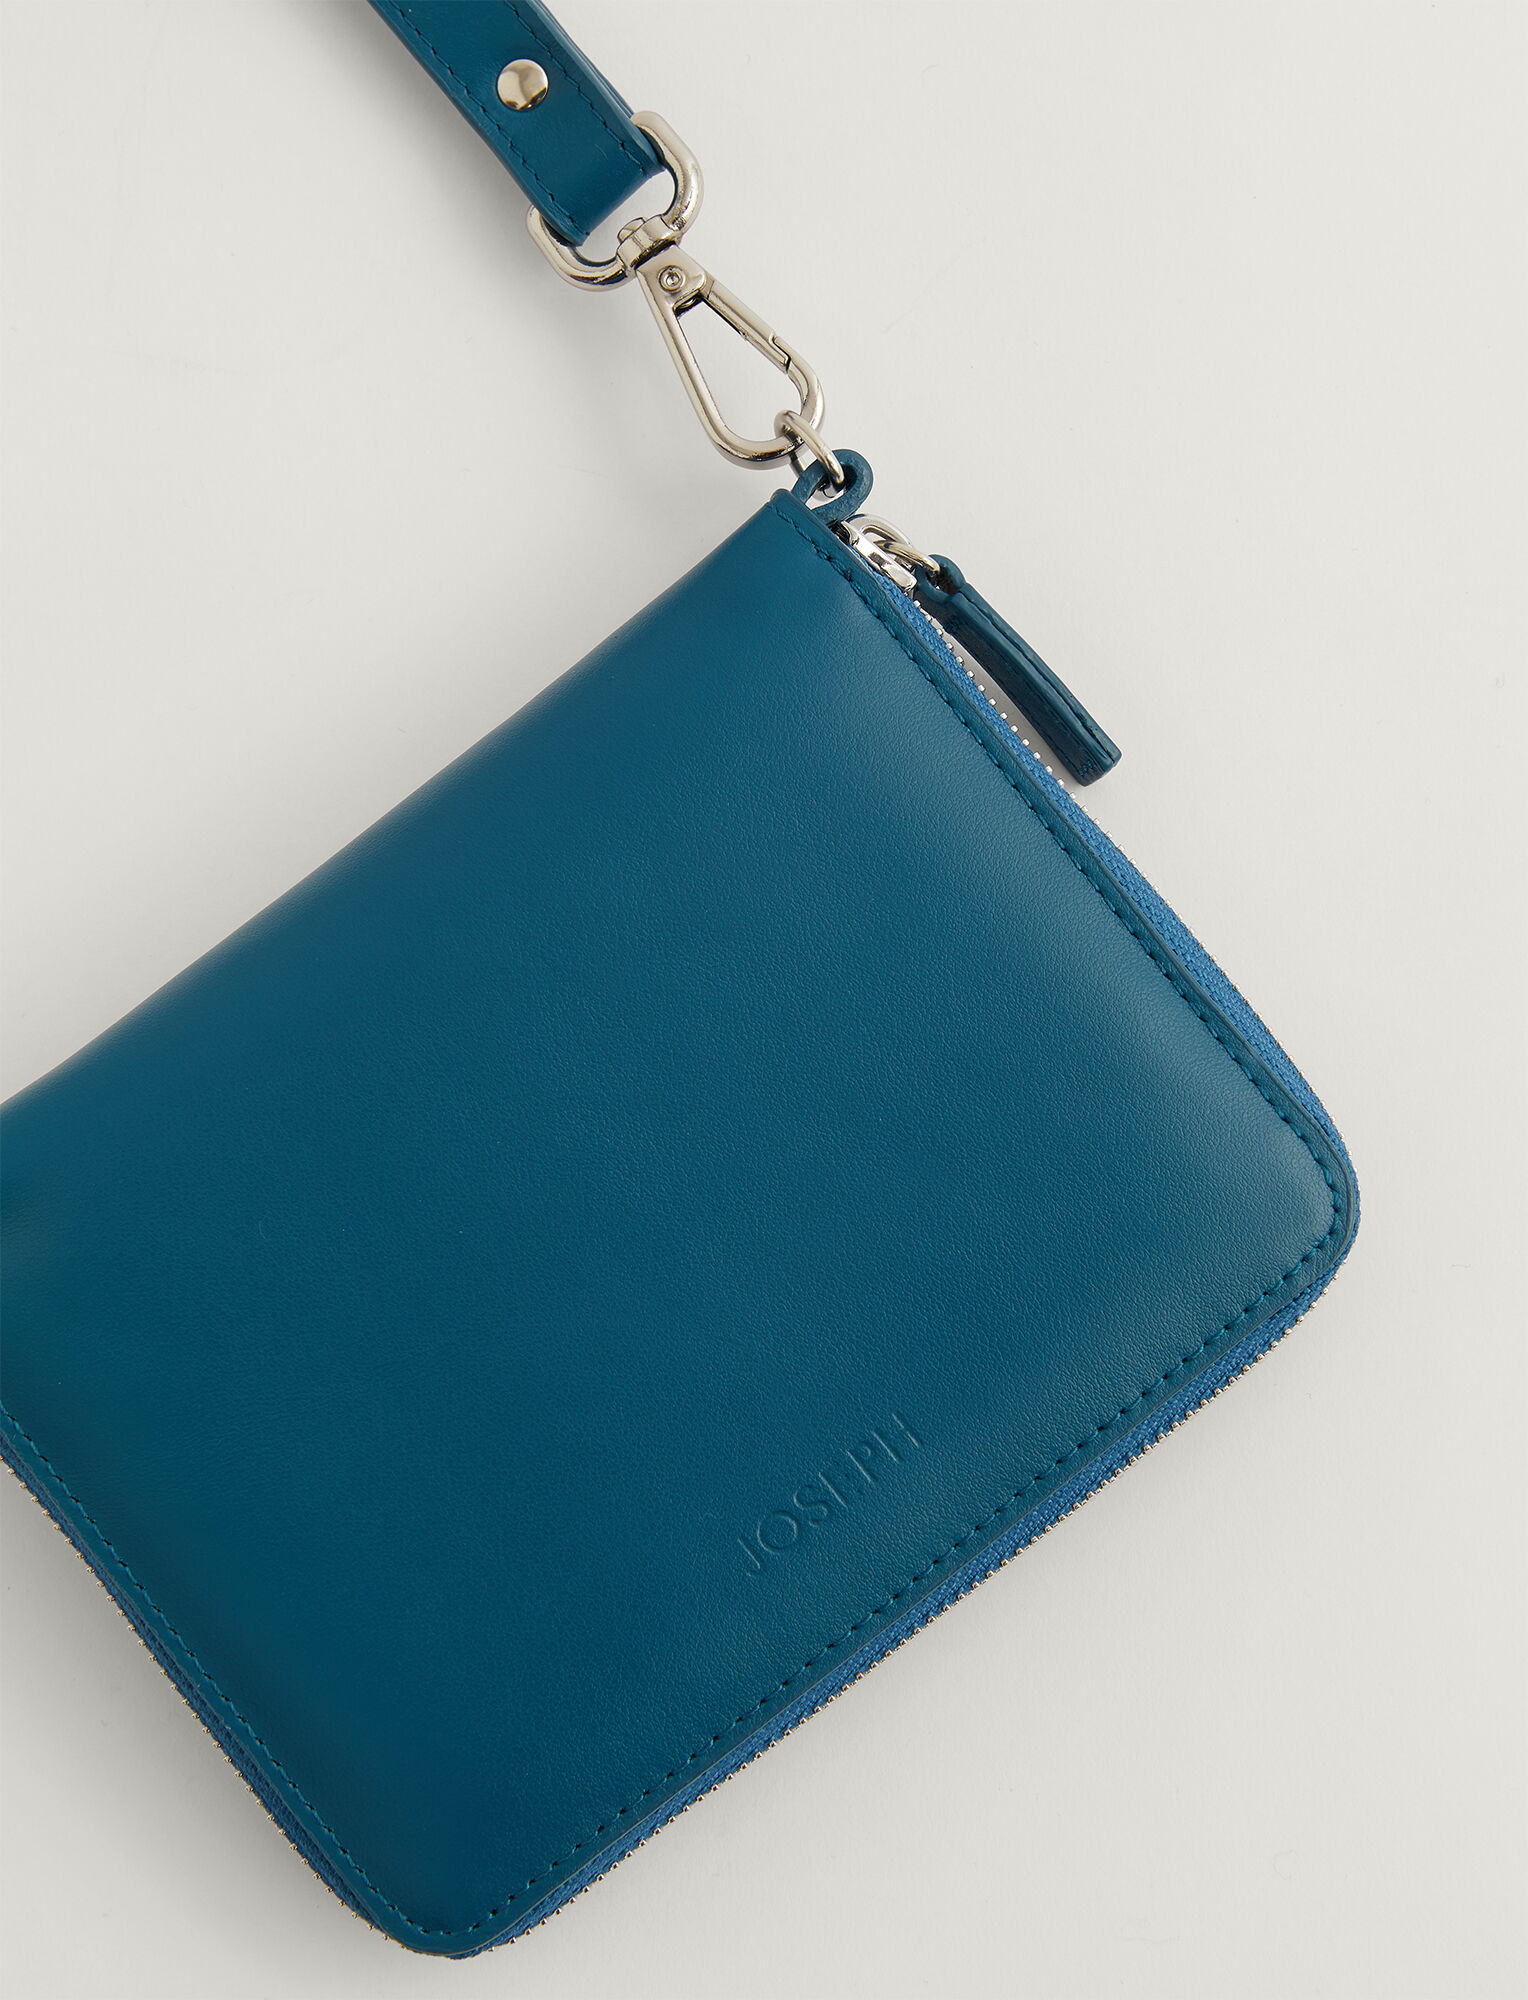 Joseph, Leather Strap Zip Wallet, in BLUE STEEL